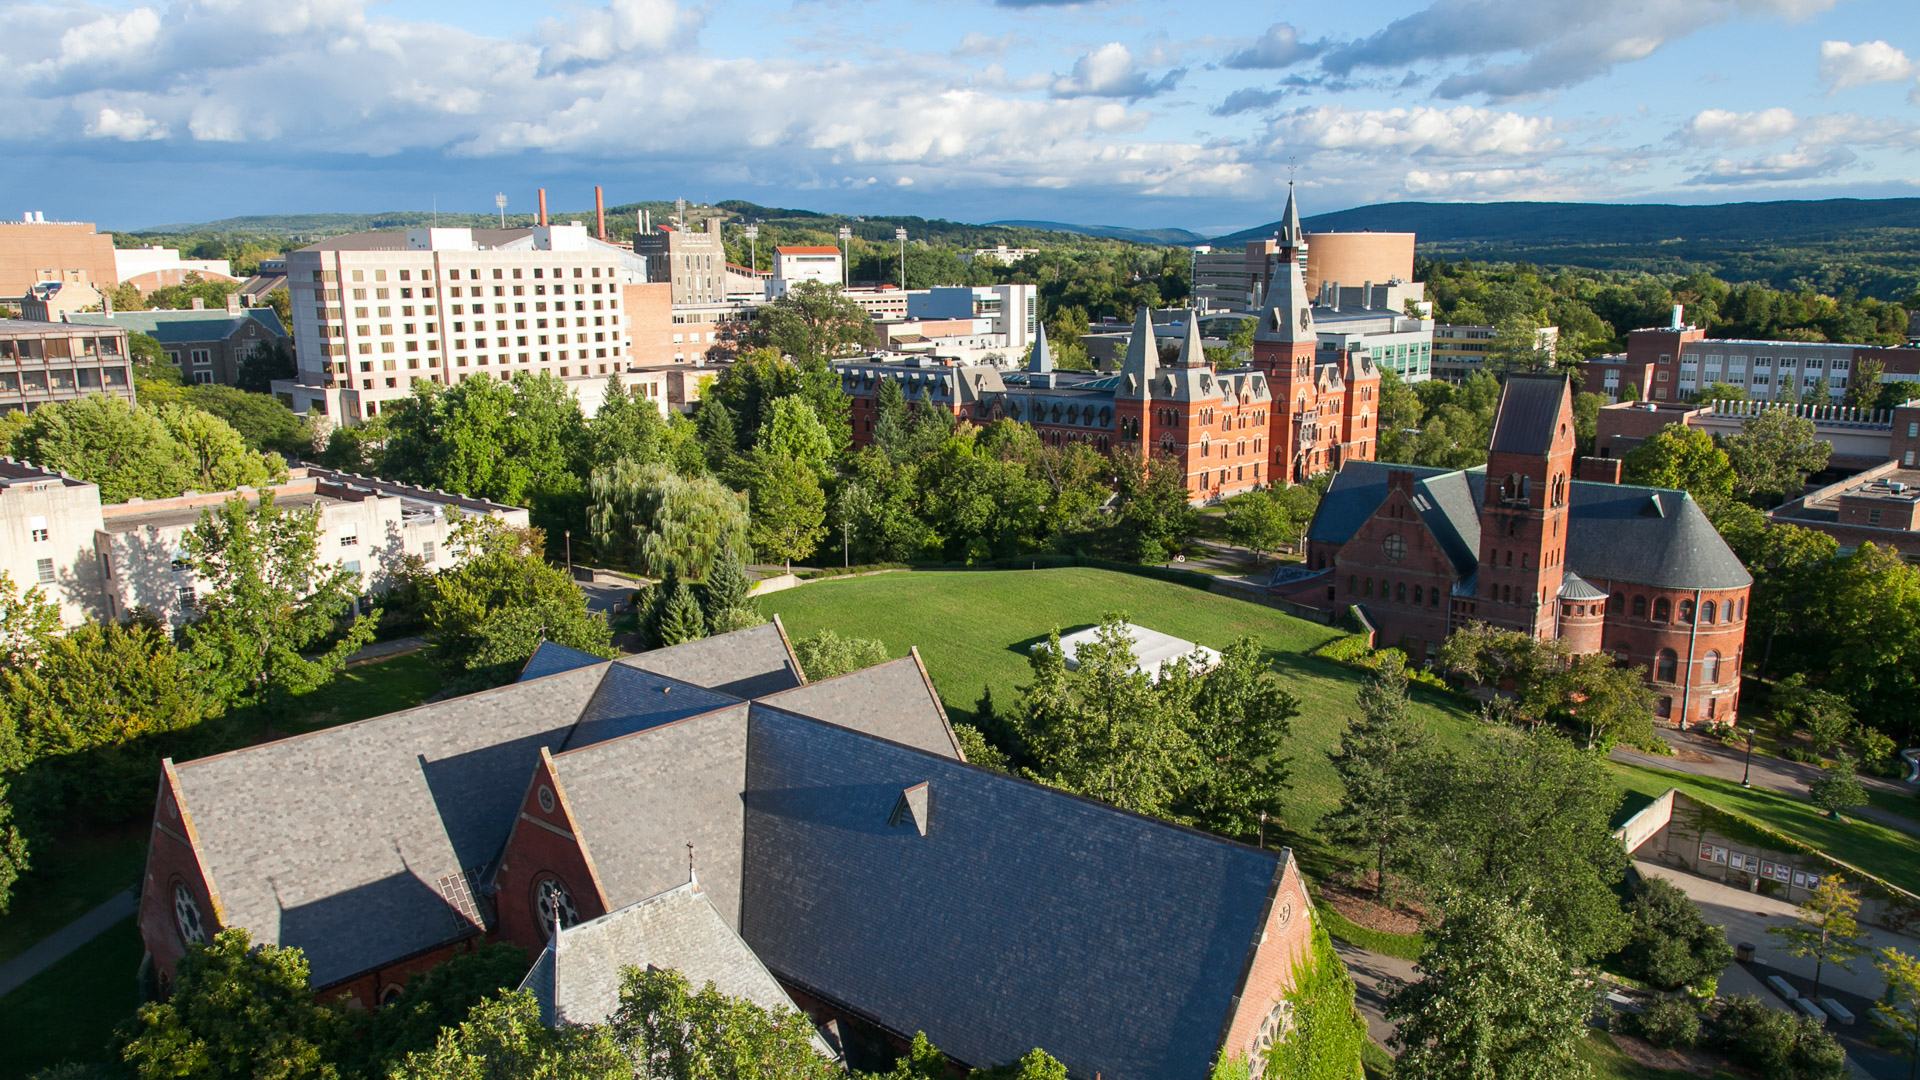 Ithaca New York aerial view of Cornell University